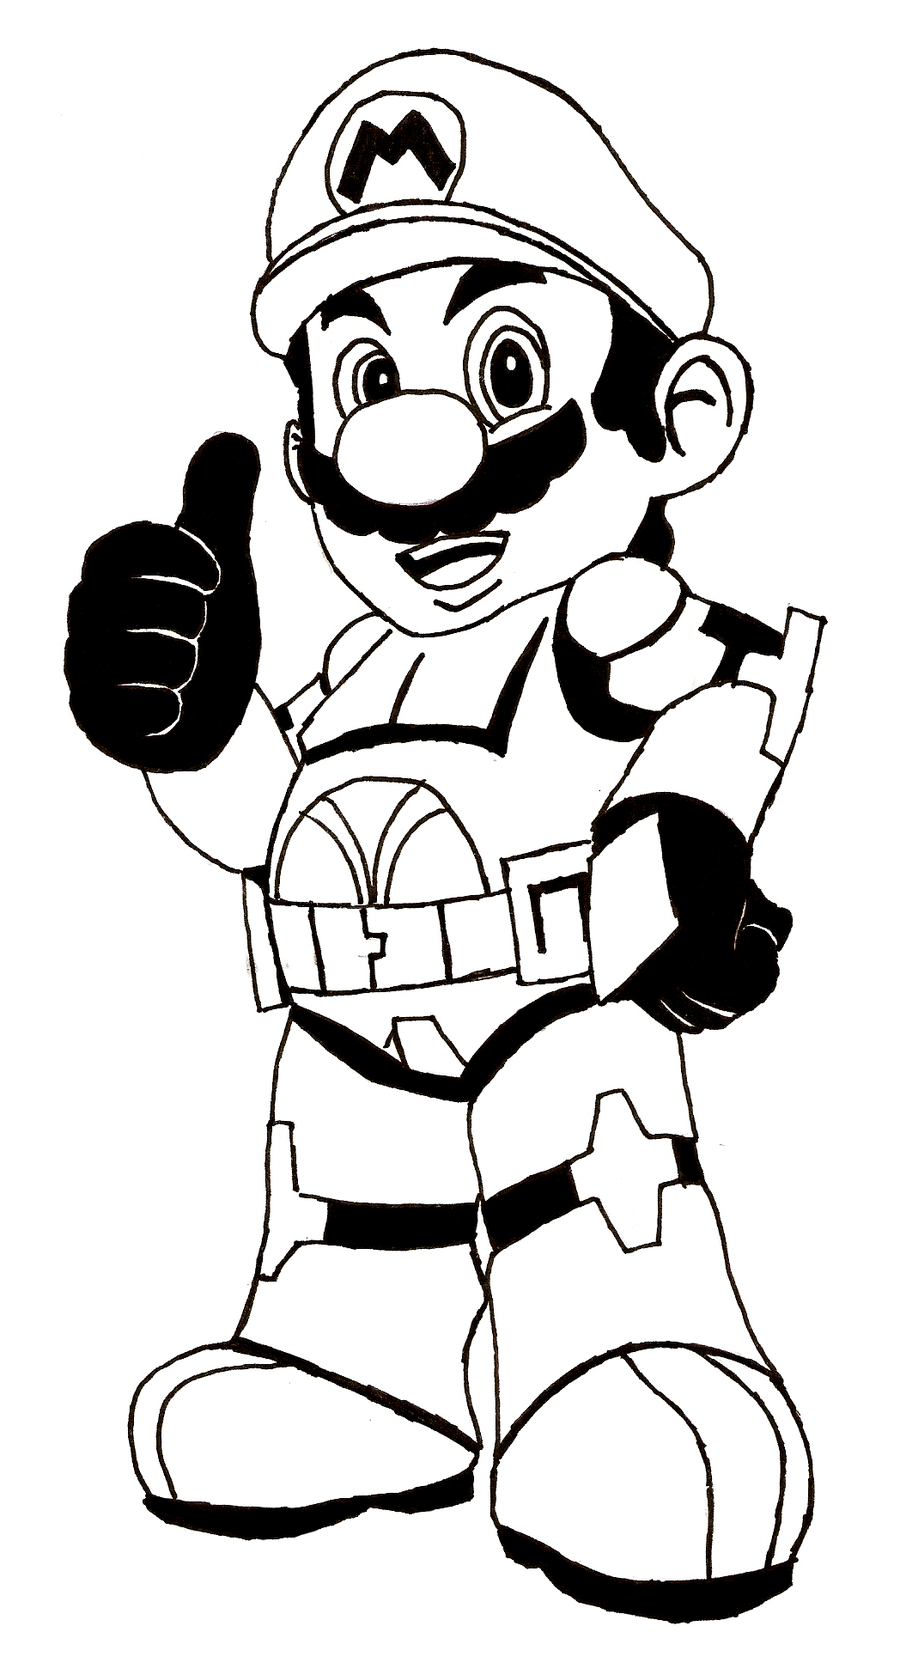 Printable Mario Coloring Pages at GetDrawings.com | Free for ...